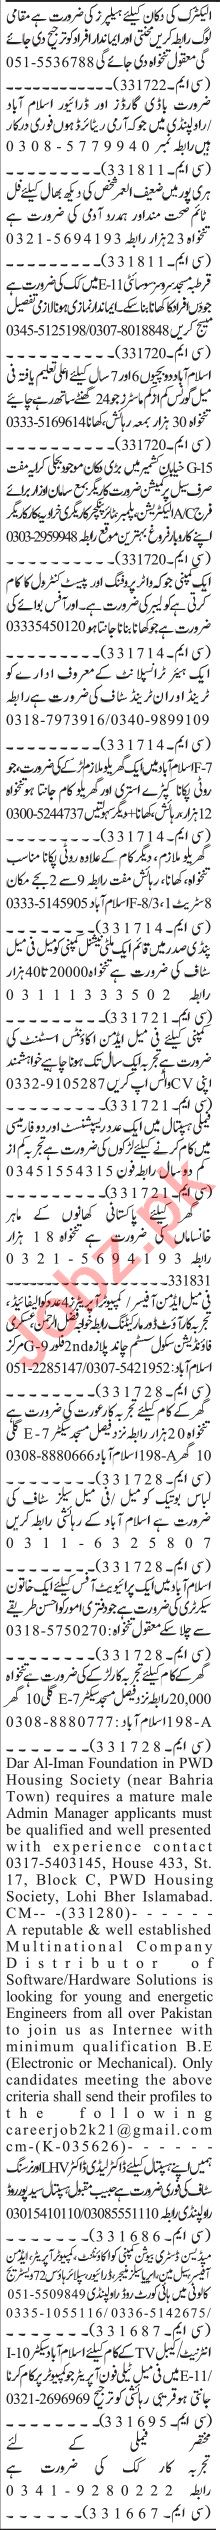 Jang Sunday Classified Ads 11 April 2021 for Office Staff